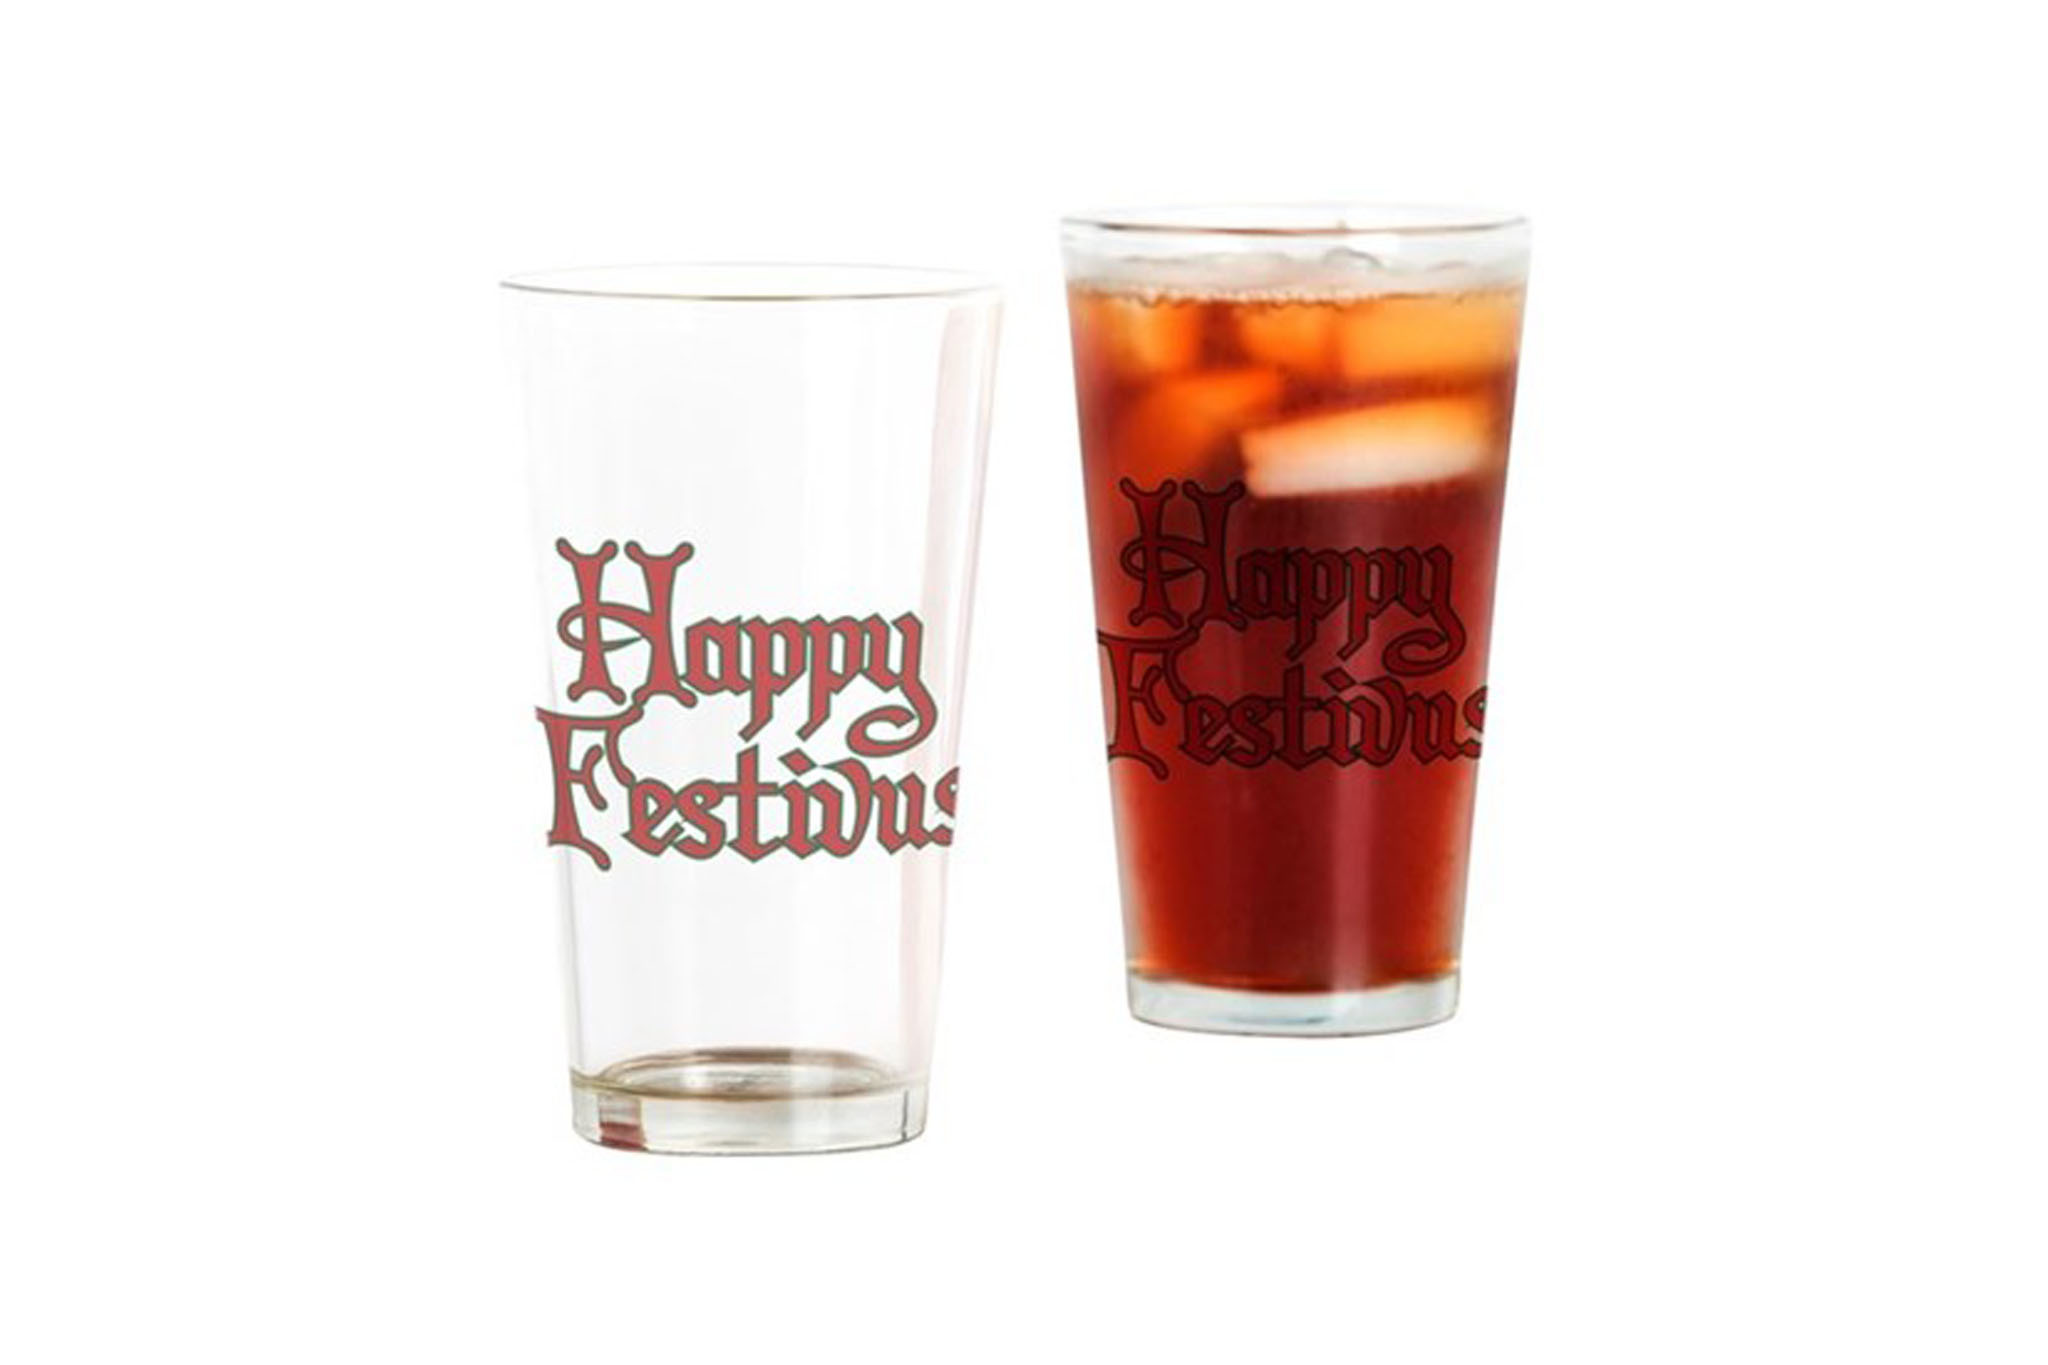 Festivus Drinking Glasses